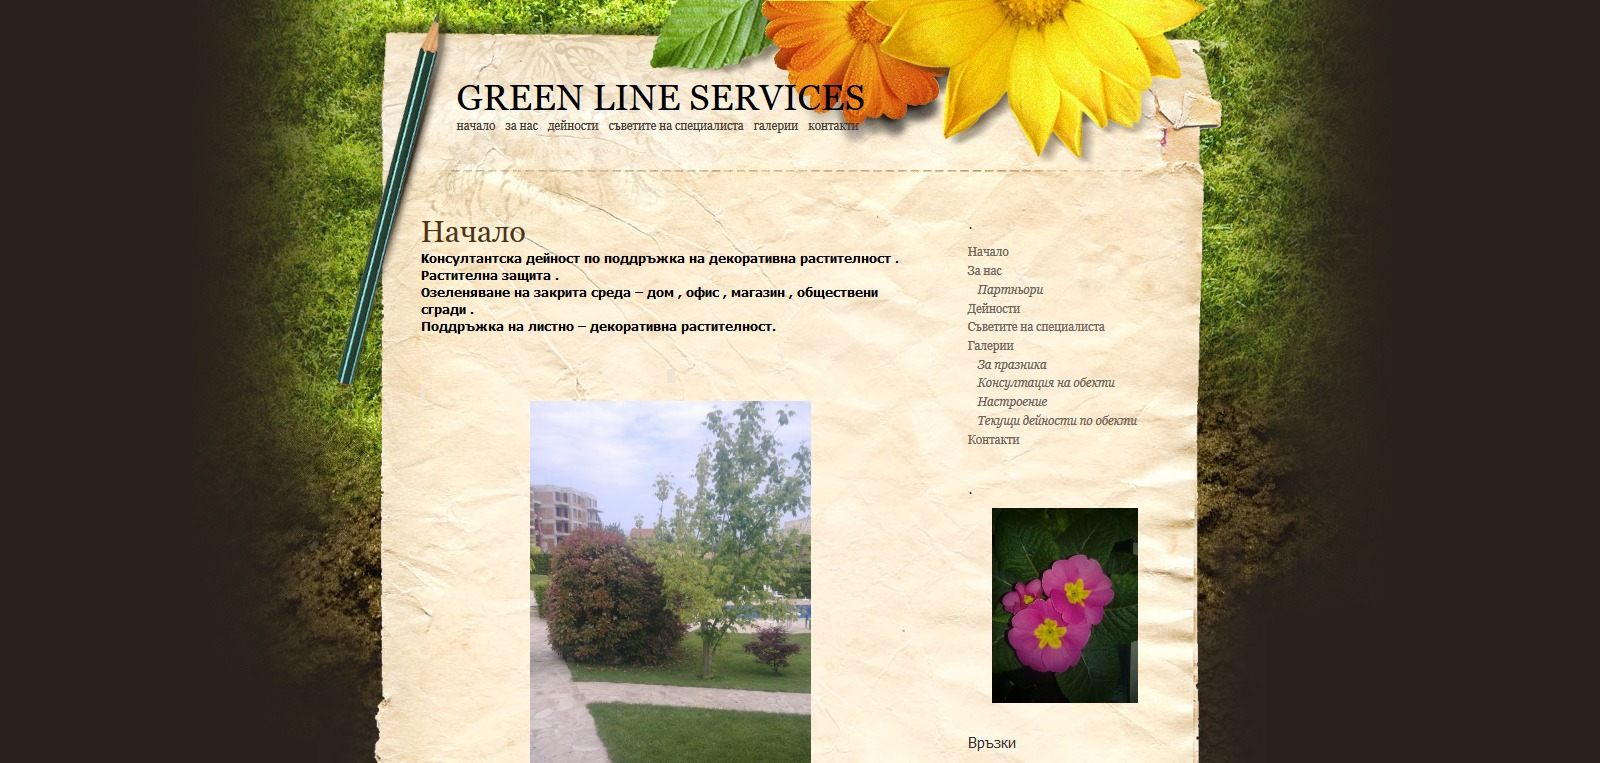 GREEN LINE SERVICES